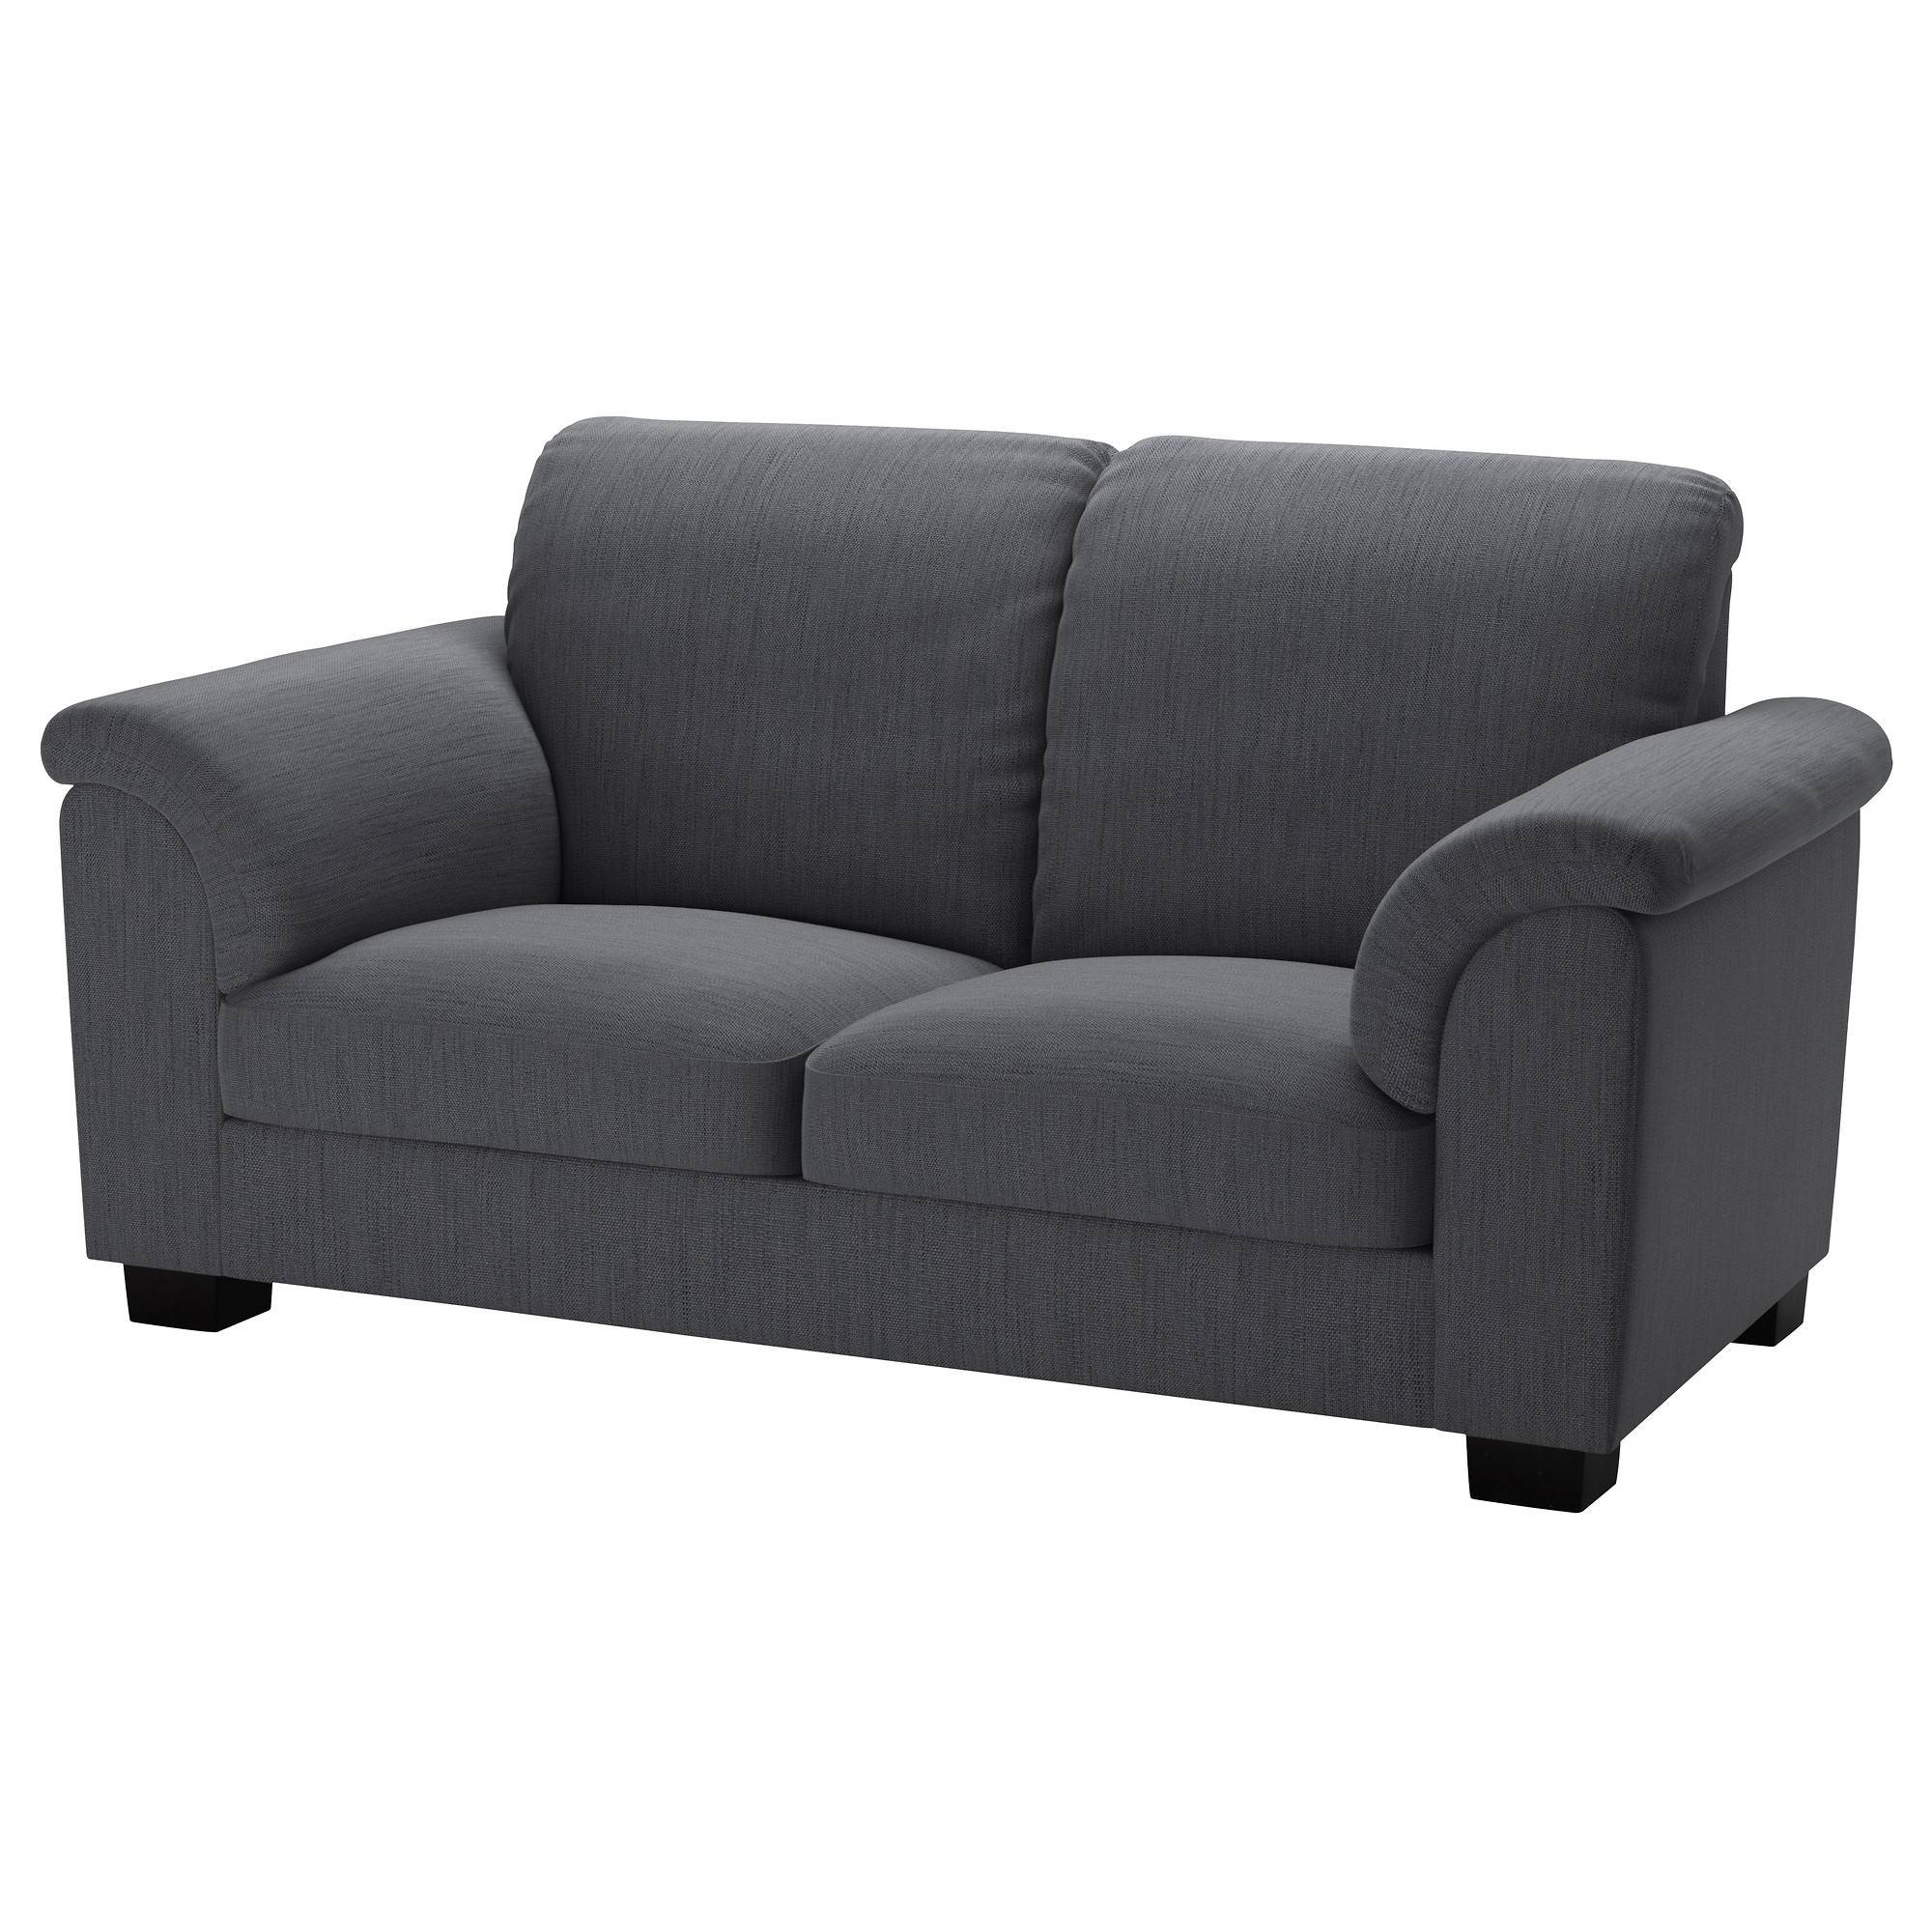 Tidafors Two-Seat Sofa Hensta Grey - Ikea with regard to Ikea Two Seater Sofas (Image 25 of 30)